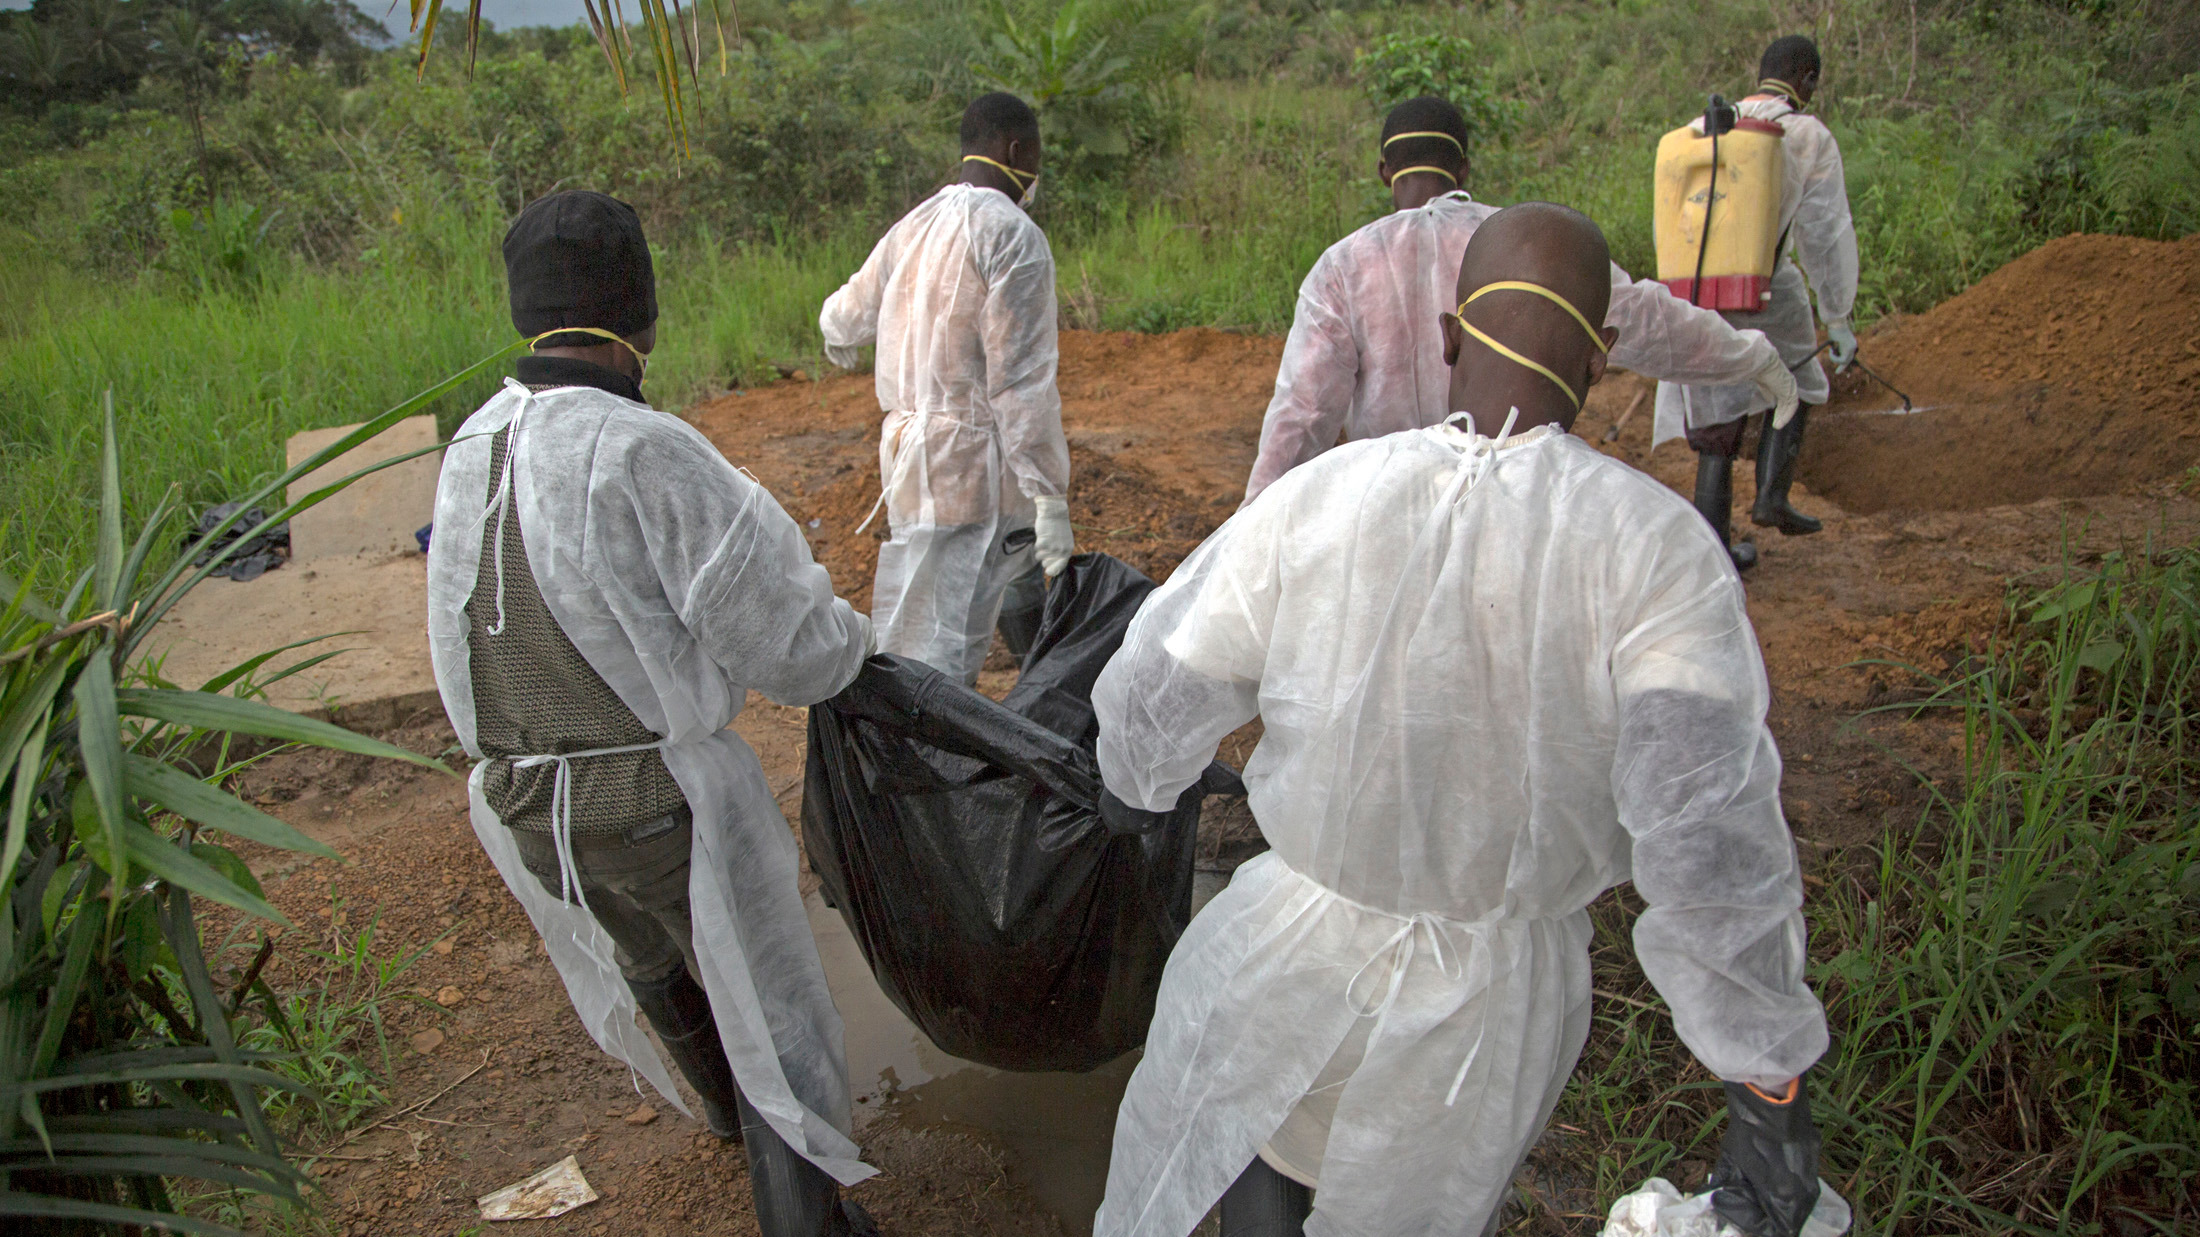 In Unification Town, Liberia young men take on the grim job of burying the dead lost to the Ebola virus currently devastating West Africa. (Sep 2014)